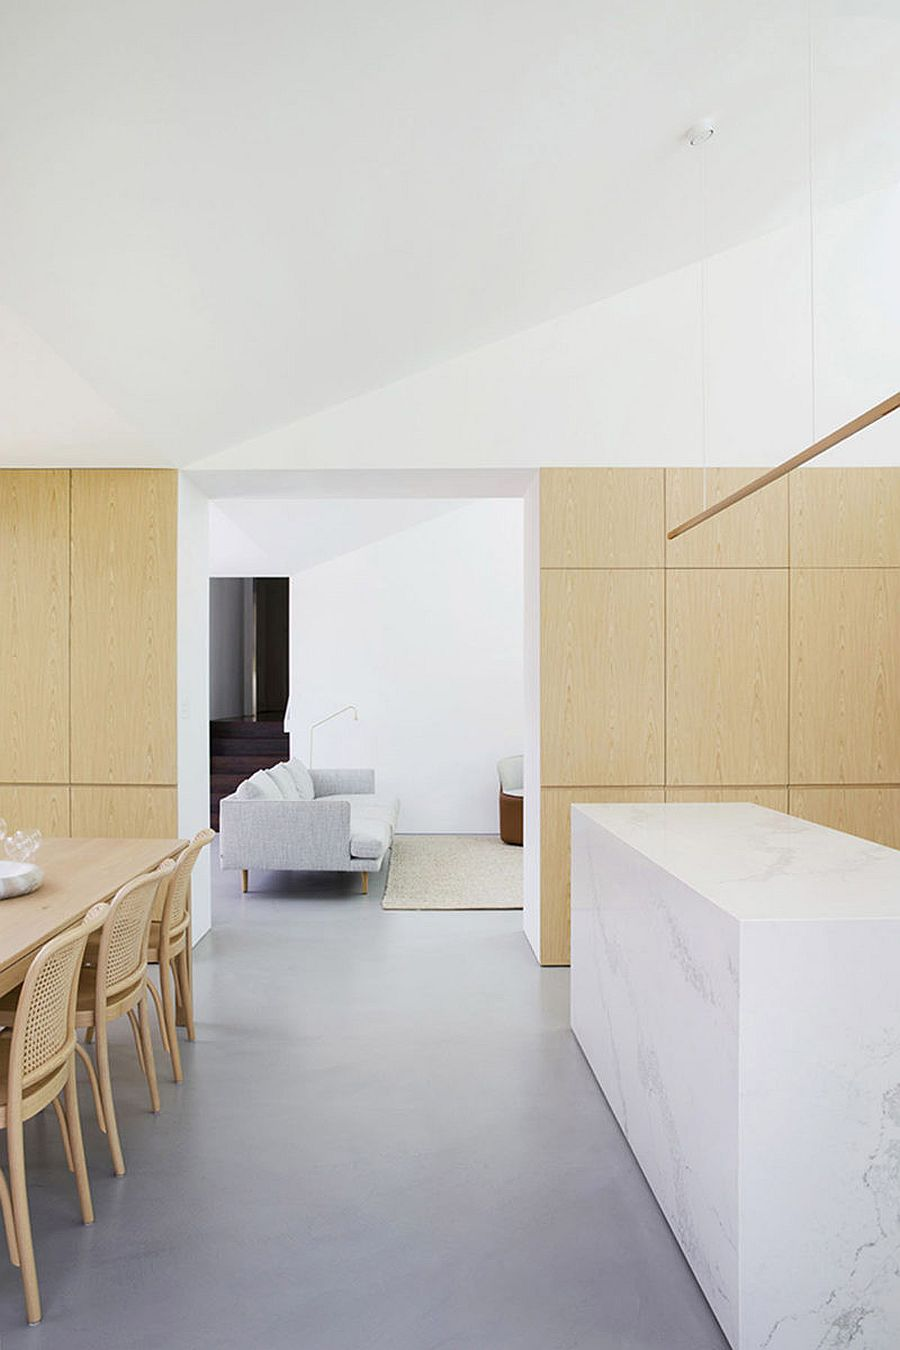 Wood-on-the-walls-and-the-dining-table-bring-contrast-and-warmth-to-the-clean-space-in-white-56388